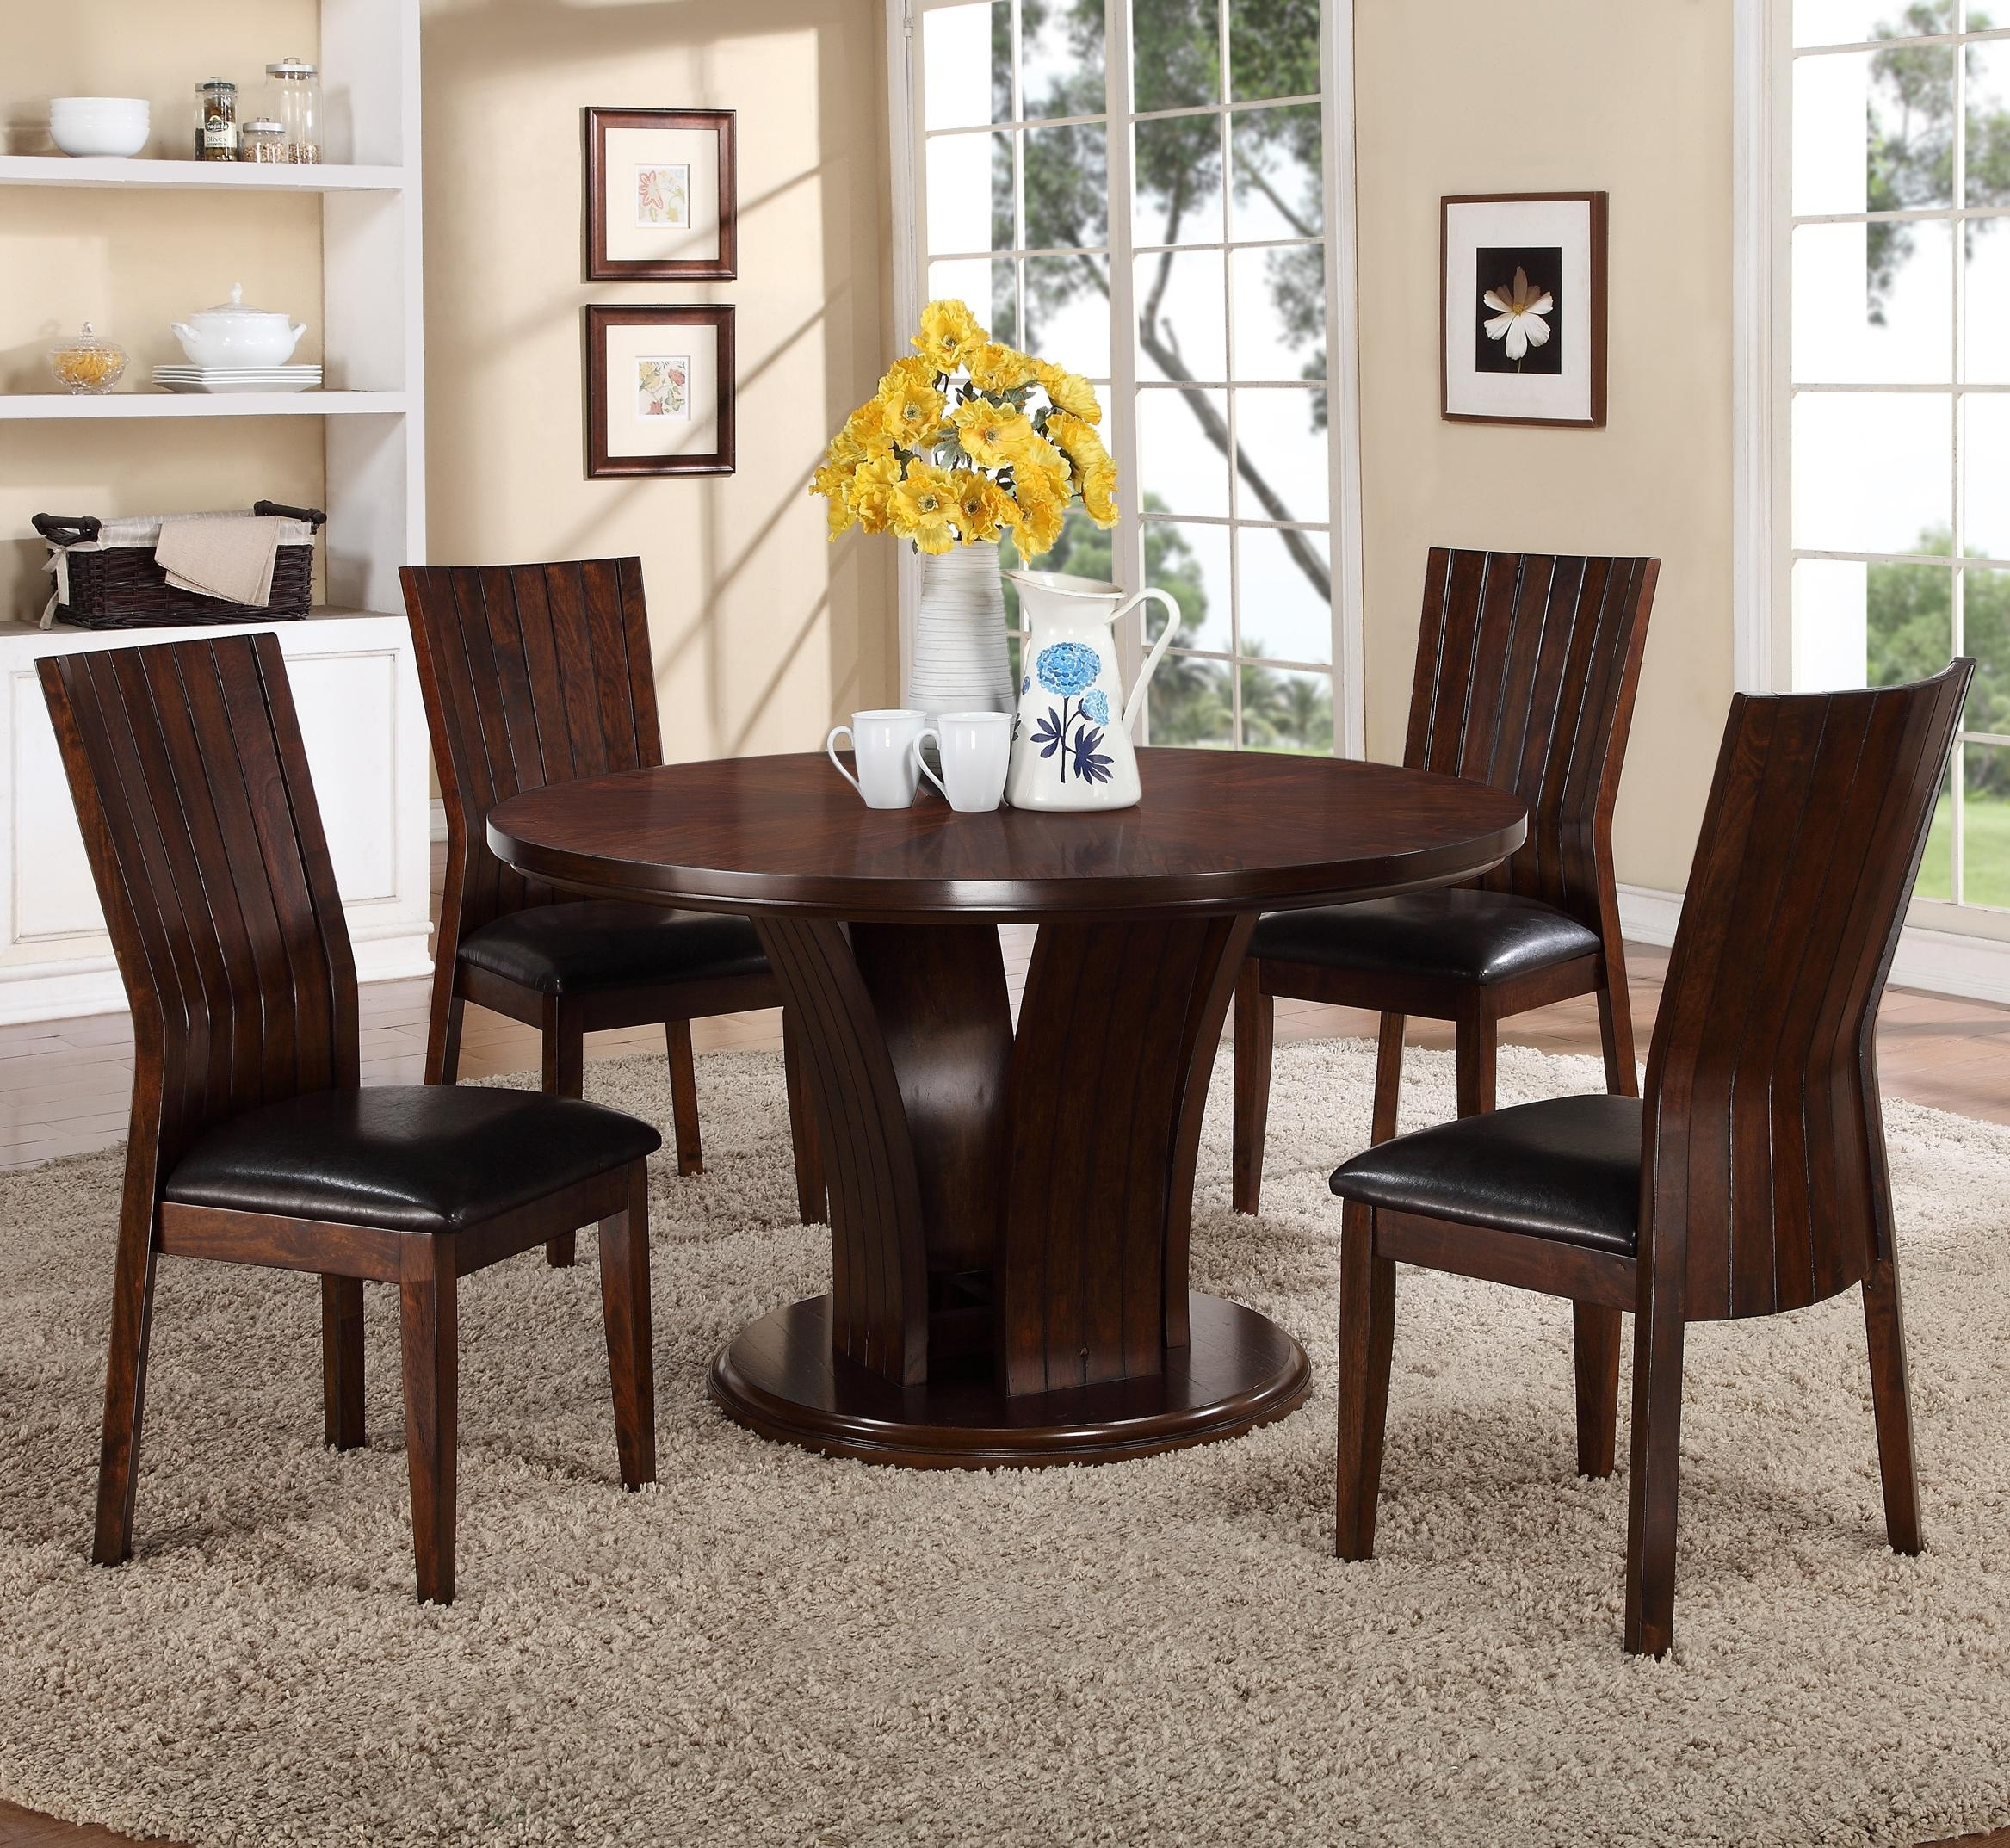 Crown Mark Daria 5 Piece Dining Set With Round Pedestal Table And Intended For Current Jaxon 5 Piece Round Dining Sets With Upholstered Chairs (Image 3 of 20)